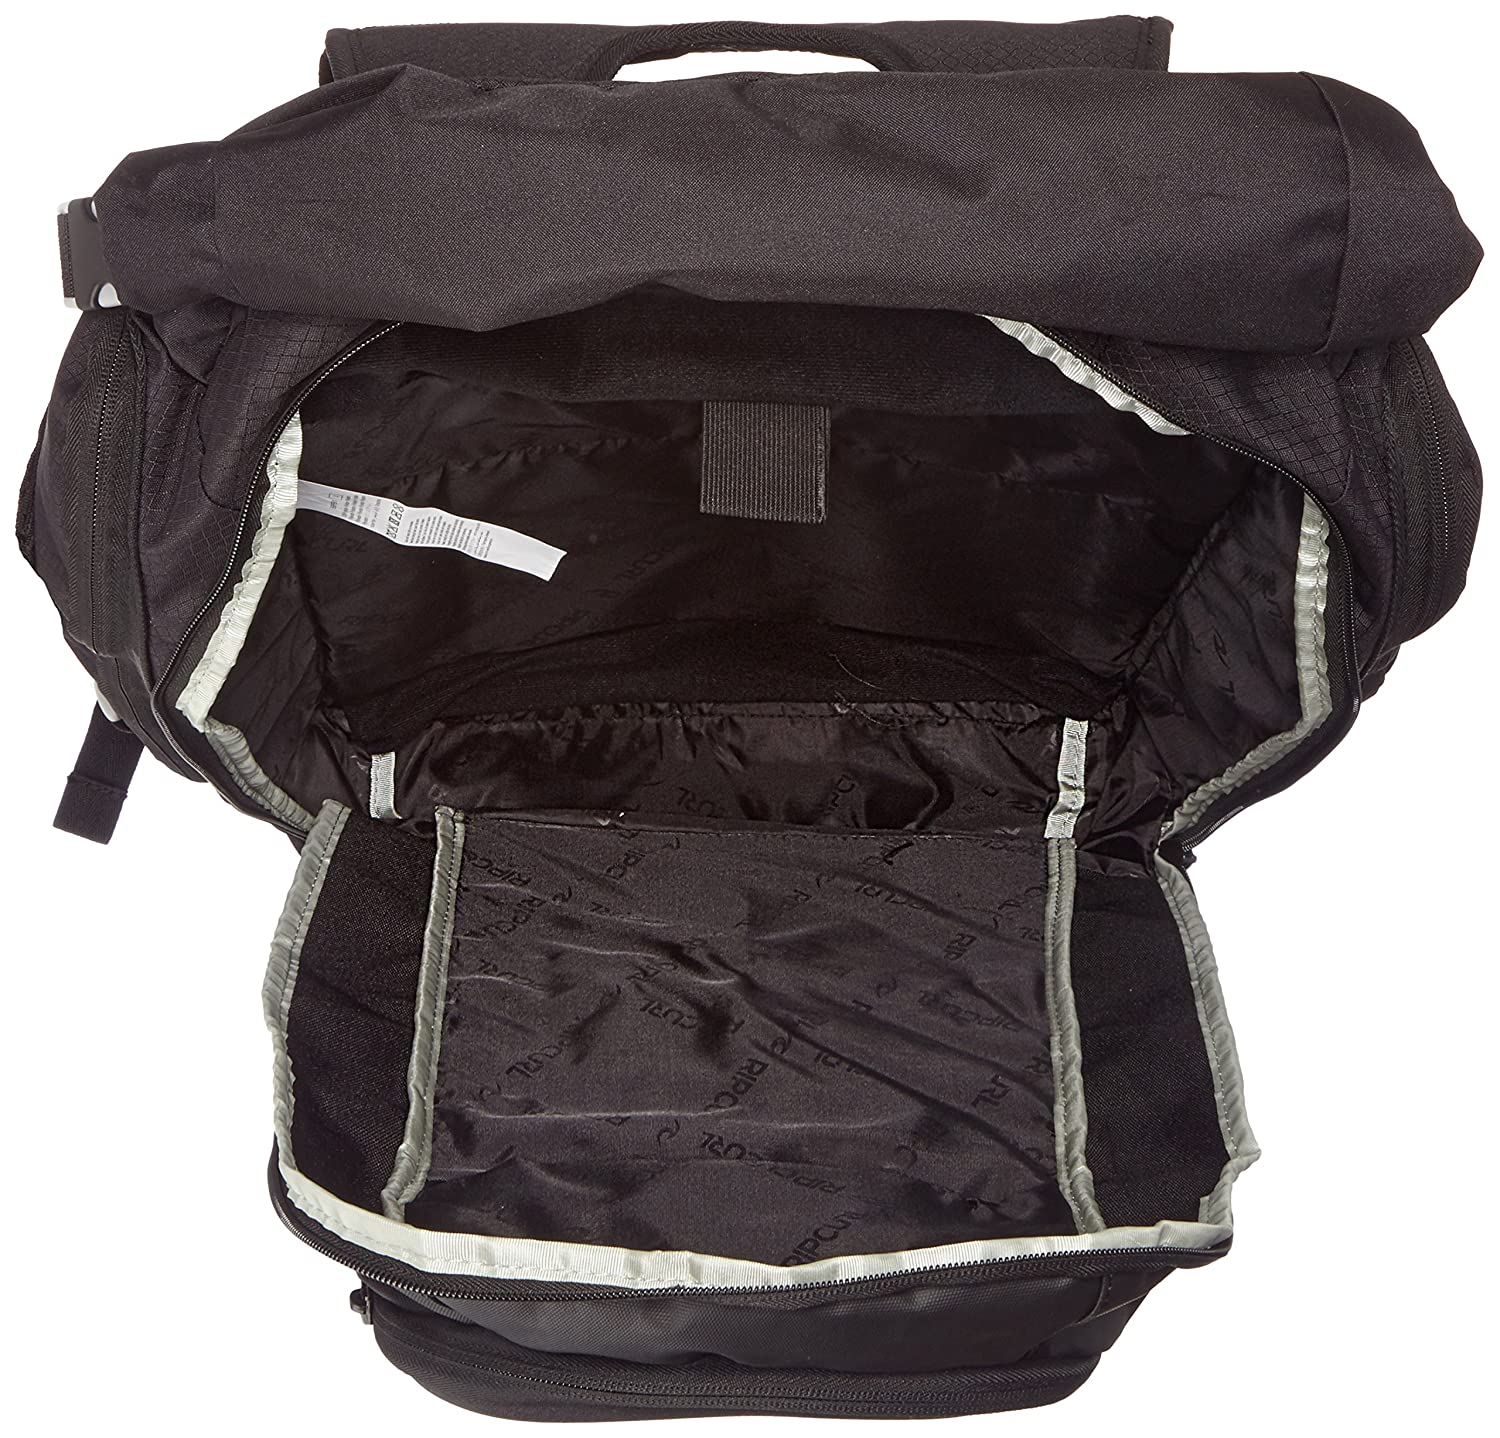 Amazon.com: Rip Curl Backpacks - Rip Curl F-light Surf Pack Wet Dry Backpack - Black: Sports & Outdoors